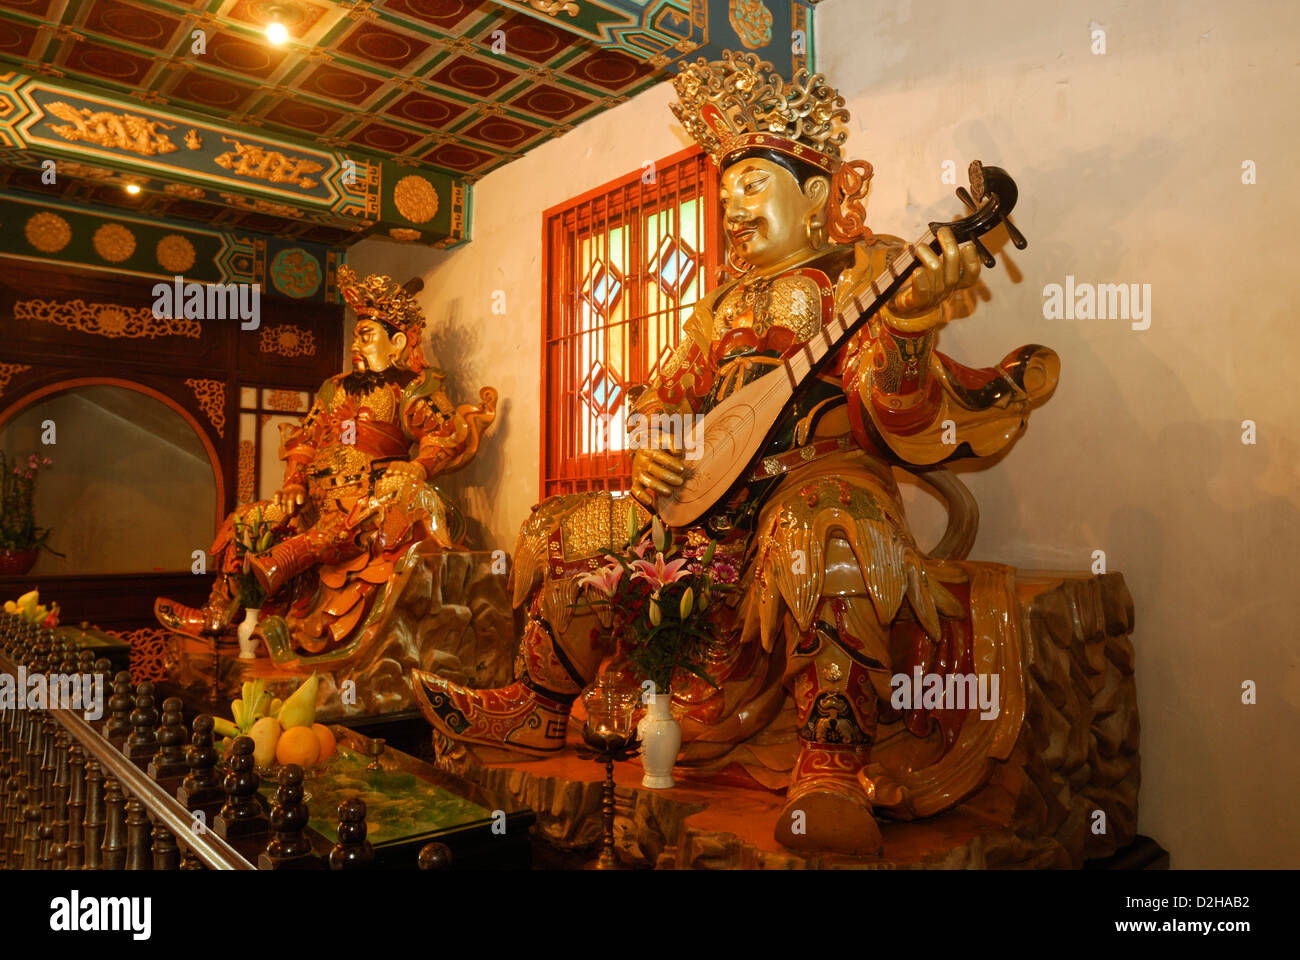 Hall of Skanda Bodhisattva, Po Lin Monastery, located on Ngong Ping Plateau, Lantau Island Hong Kong China. - Stock Image